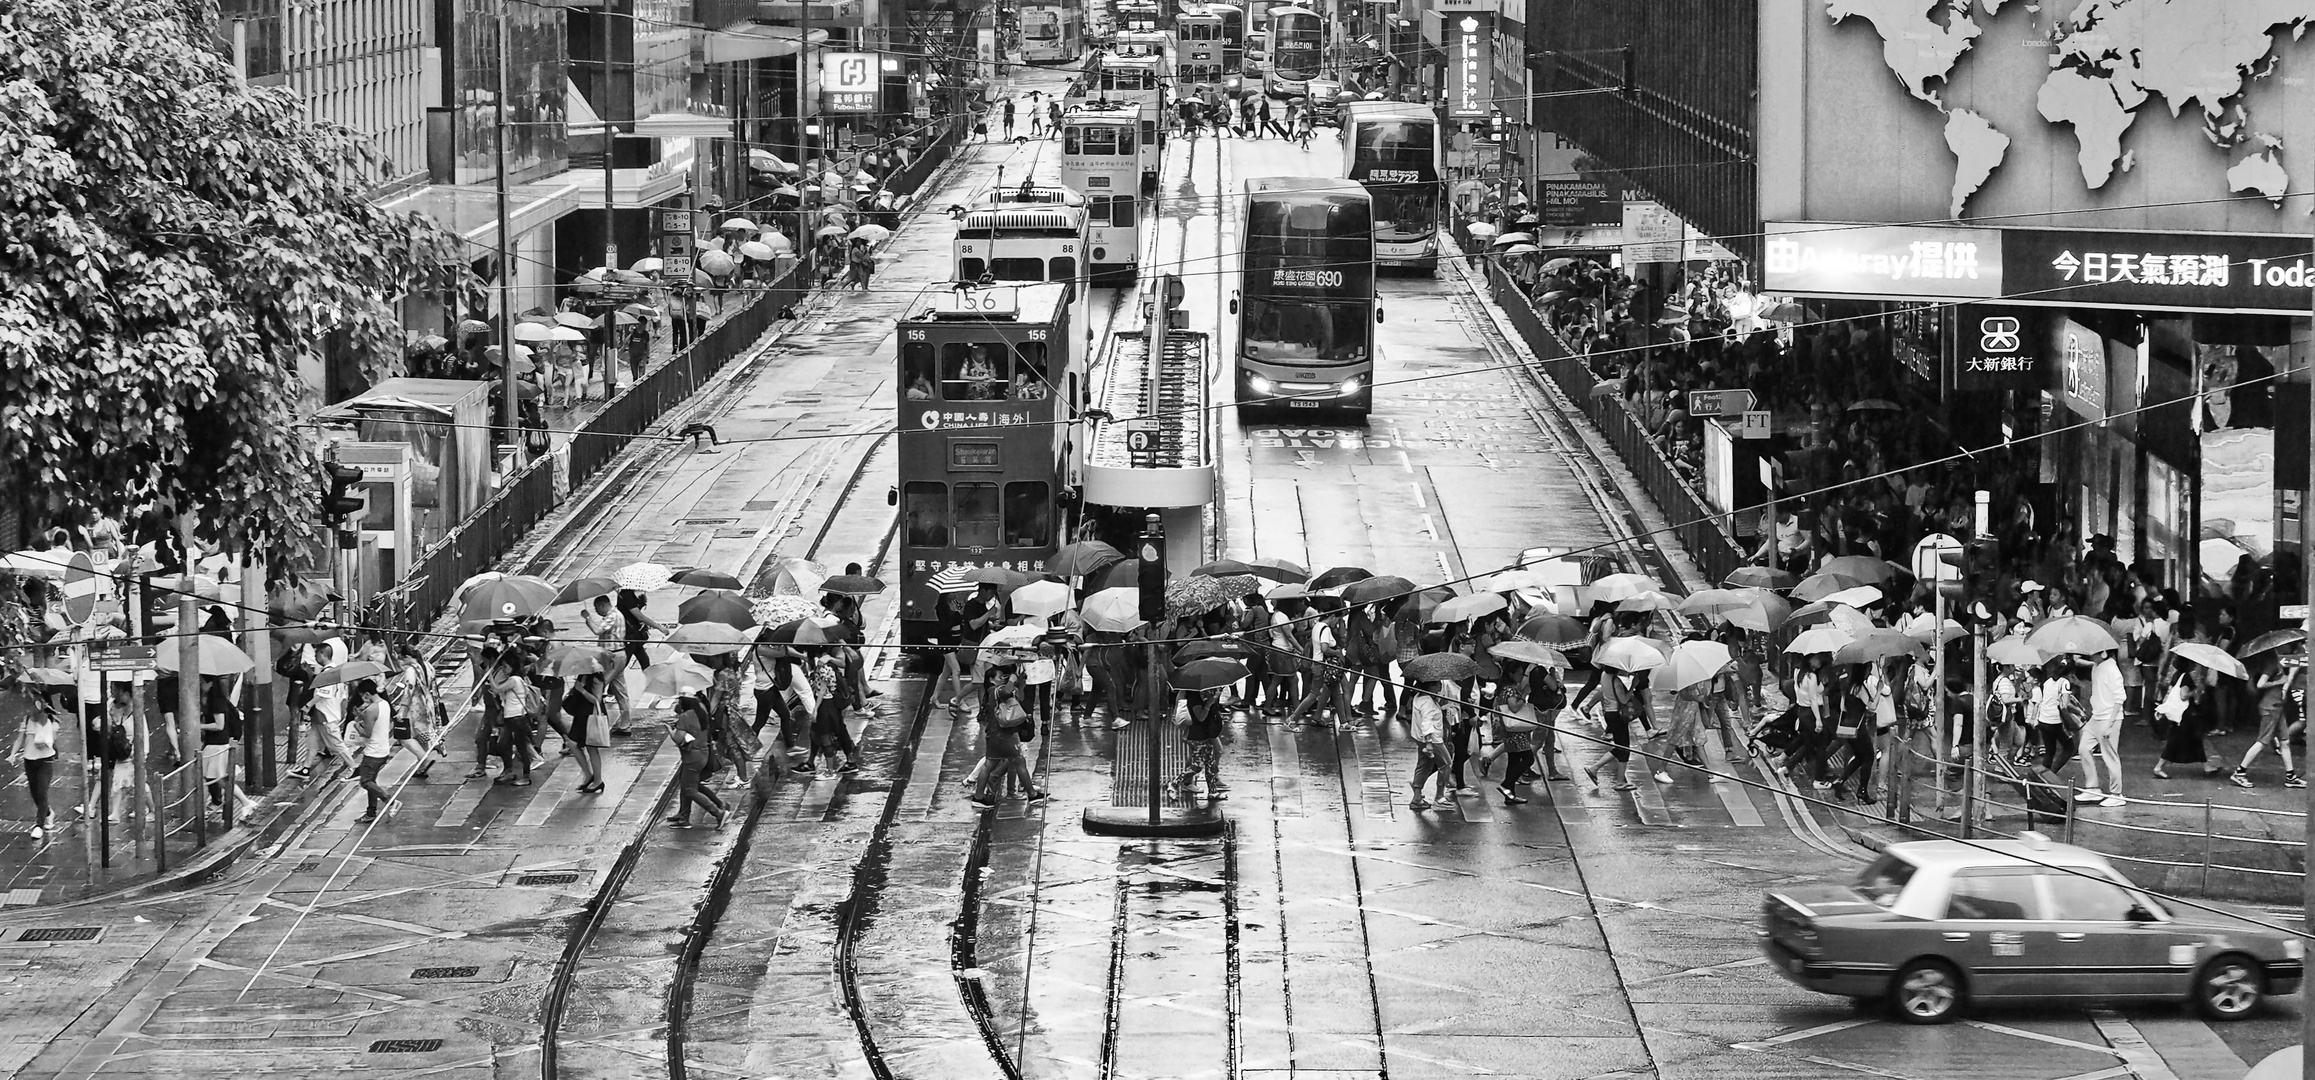 A Rainy Day In Hong Kong